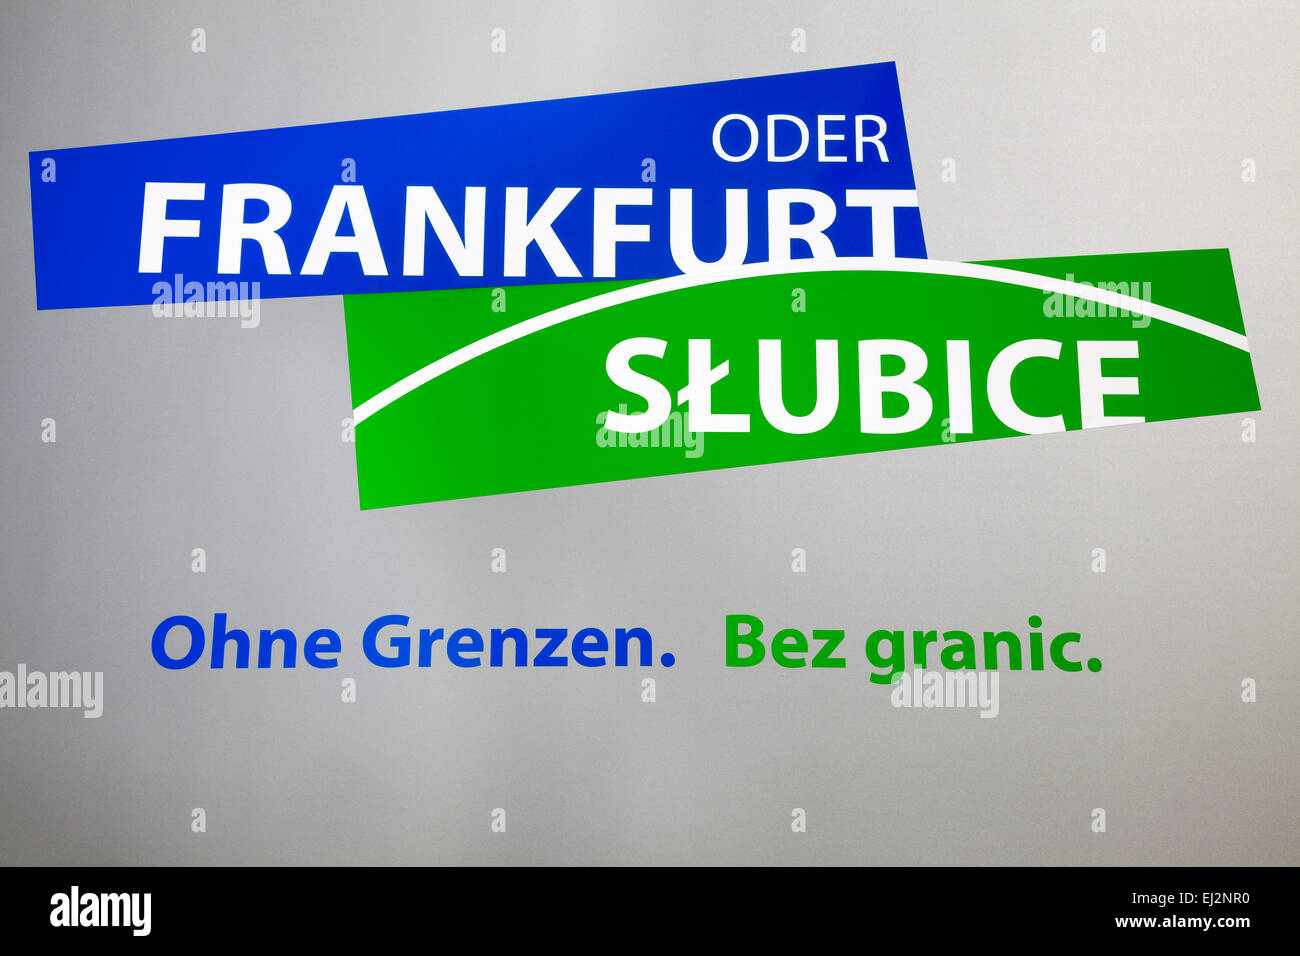 Frankfurt Oder Slubice without borders sign, Frankfurt Oder, Germany - Stock Image